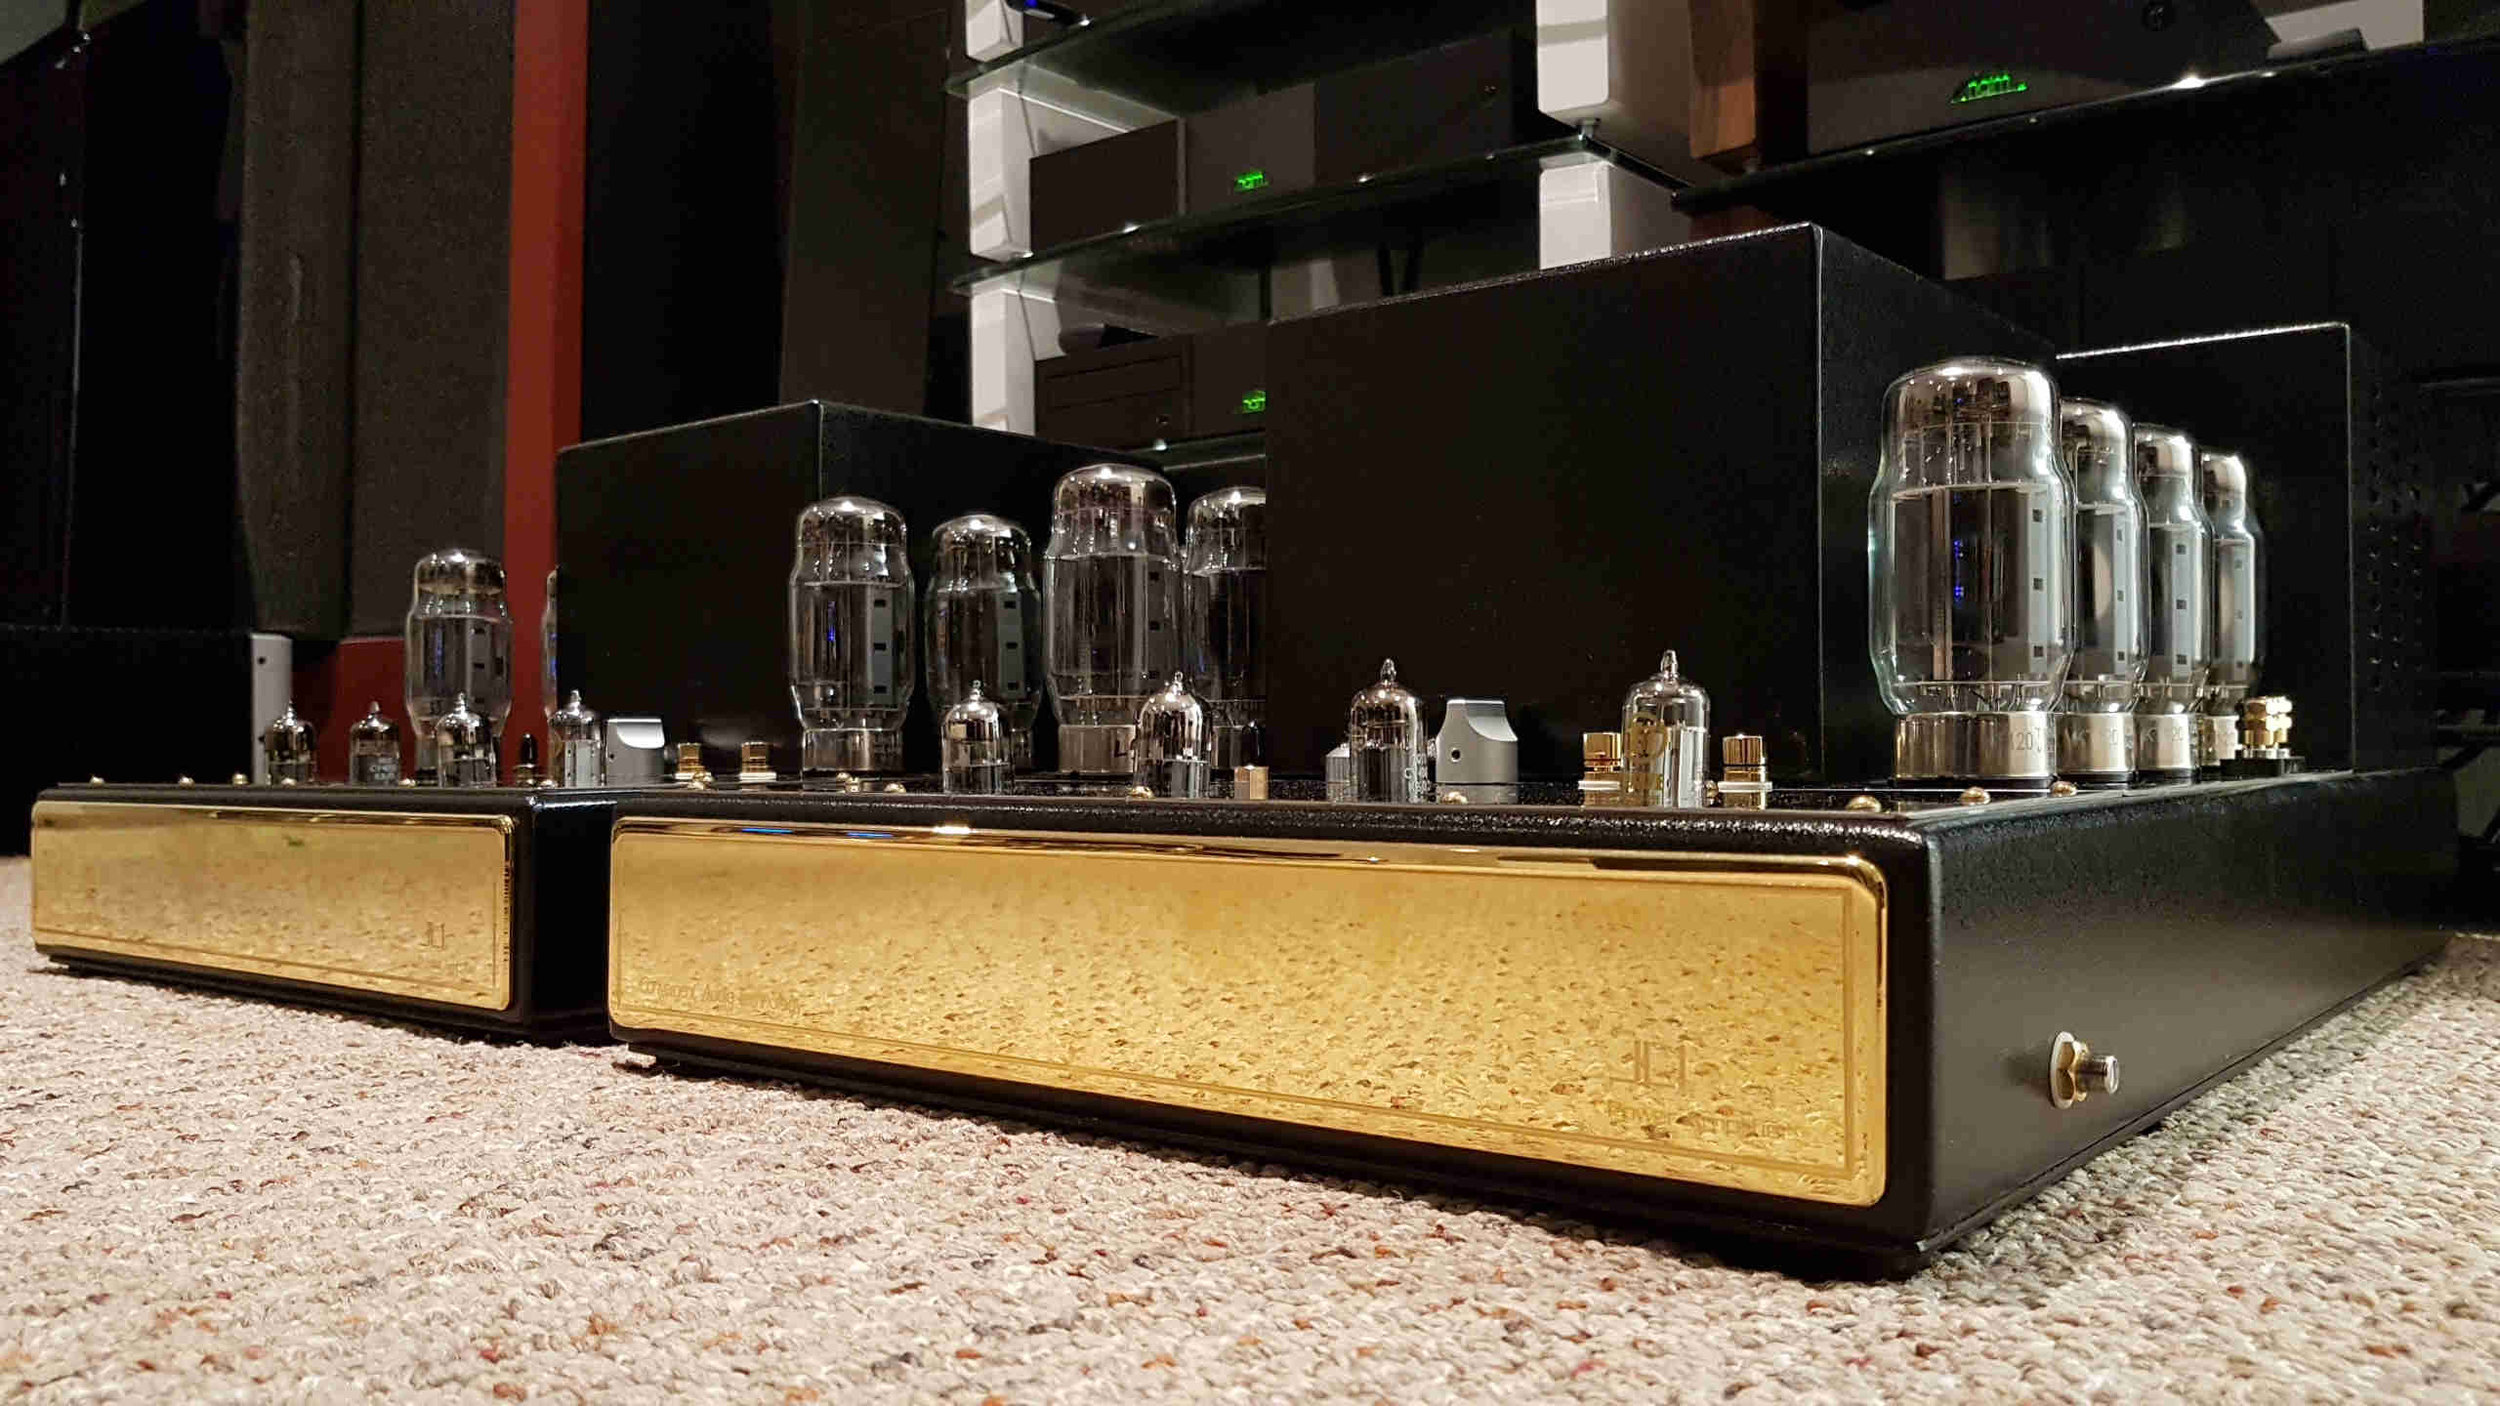 Convergent Audio Technology JL-1 RARE! - $11,500 - Convergent Audio Technology JL-1Pure Class A Triode Tube AmplifiersKT120 output tubesRemovable tube cagesVery good condition. Fully checked, biased, tested and ready to go.